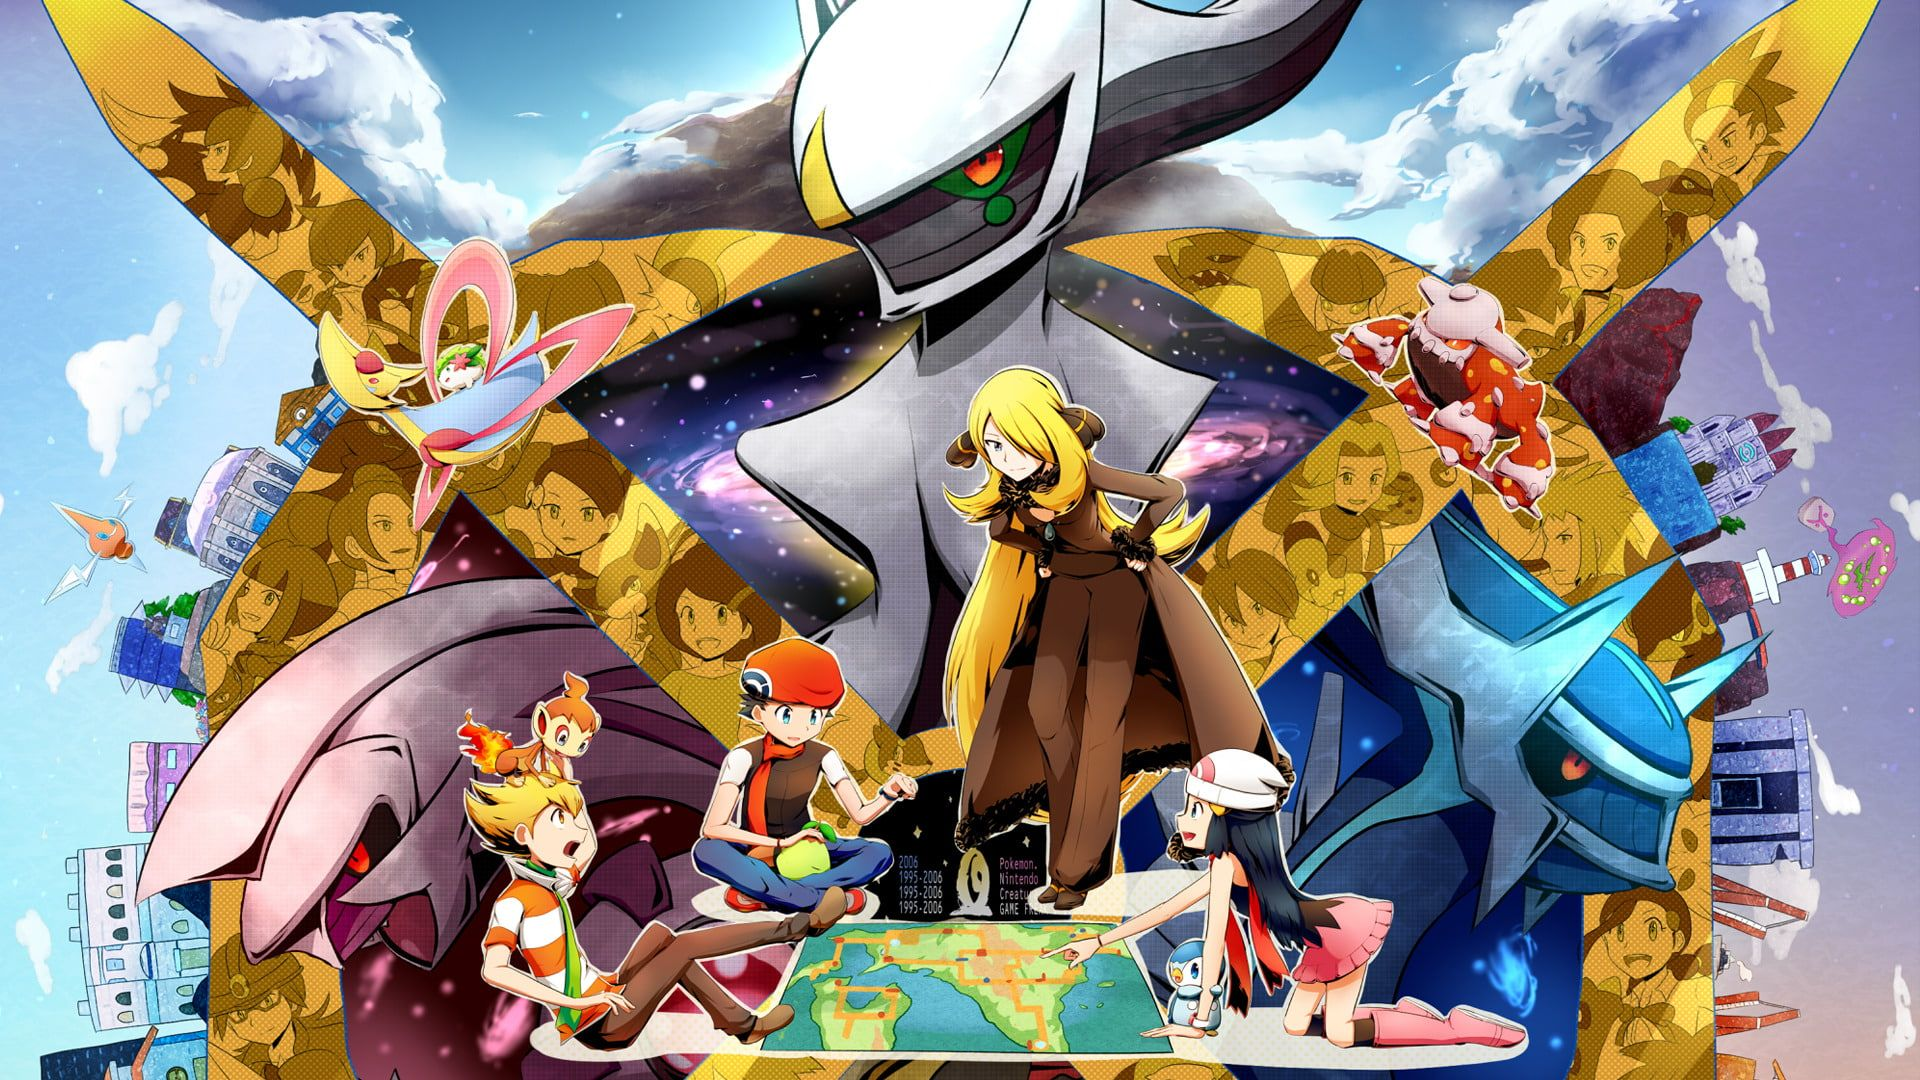 8be9b36d5a6489c3511410fb3bf74215 - How To Get Arceus In Pokemon Pearl Without Cheats